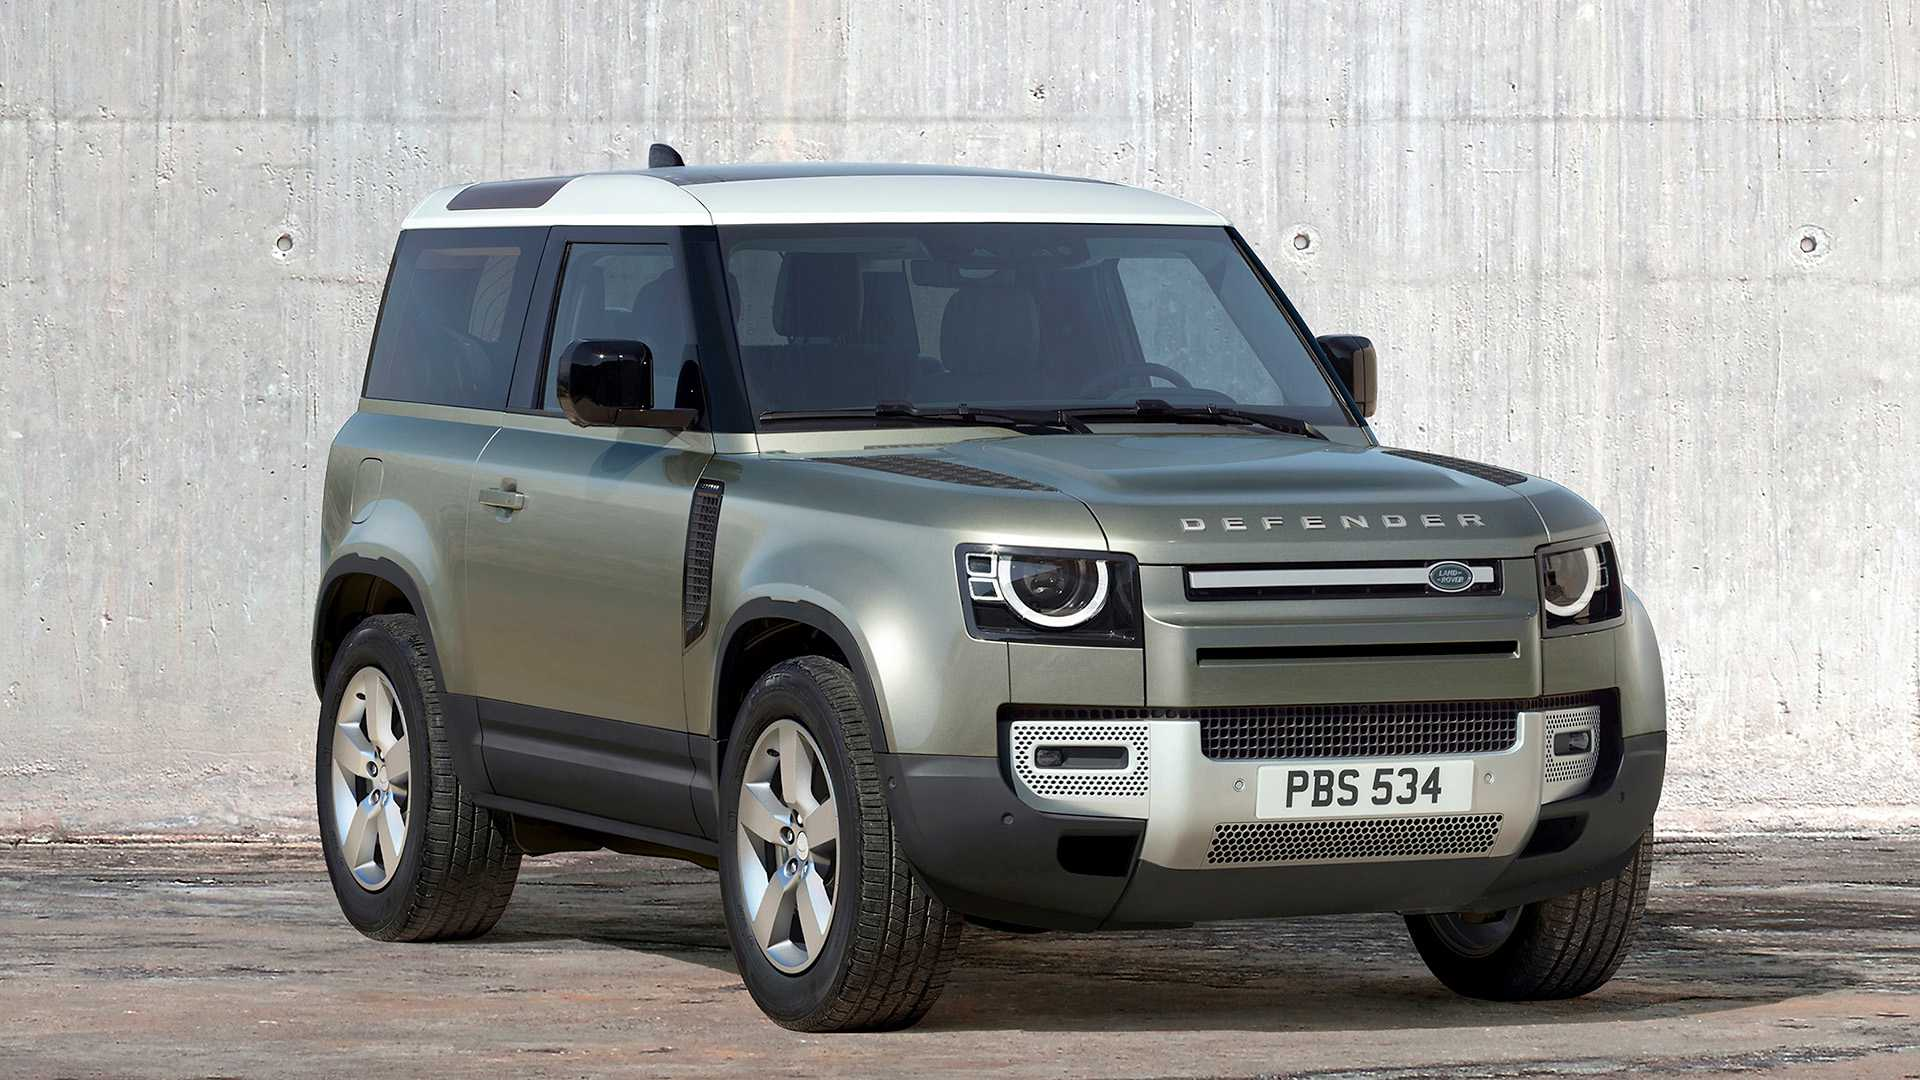 2020 Land Rover Defender 90 First Edition To Start At $65,100